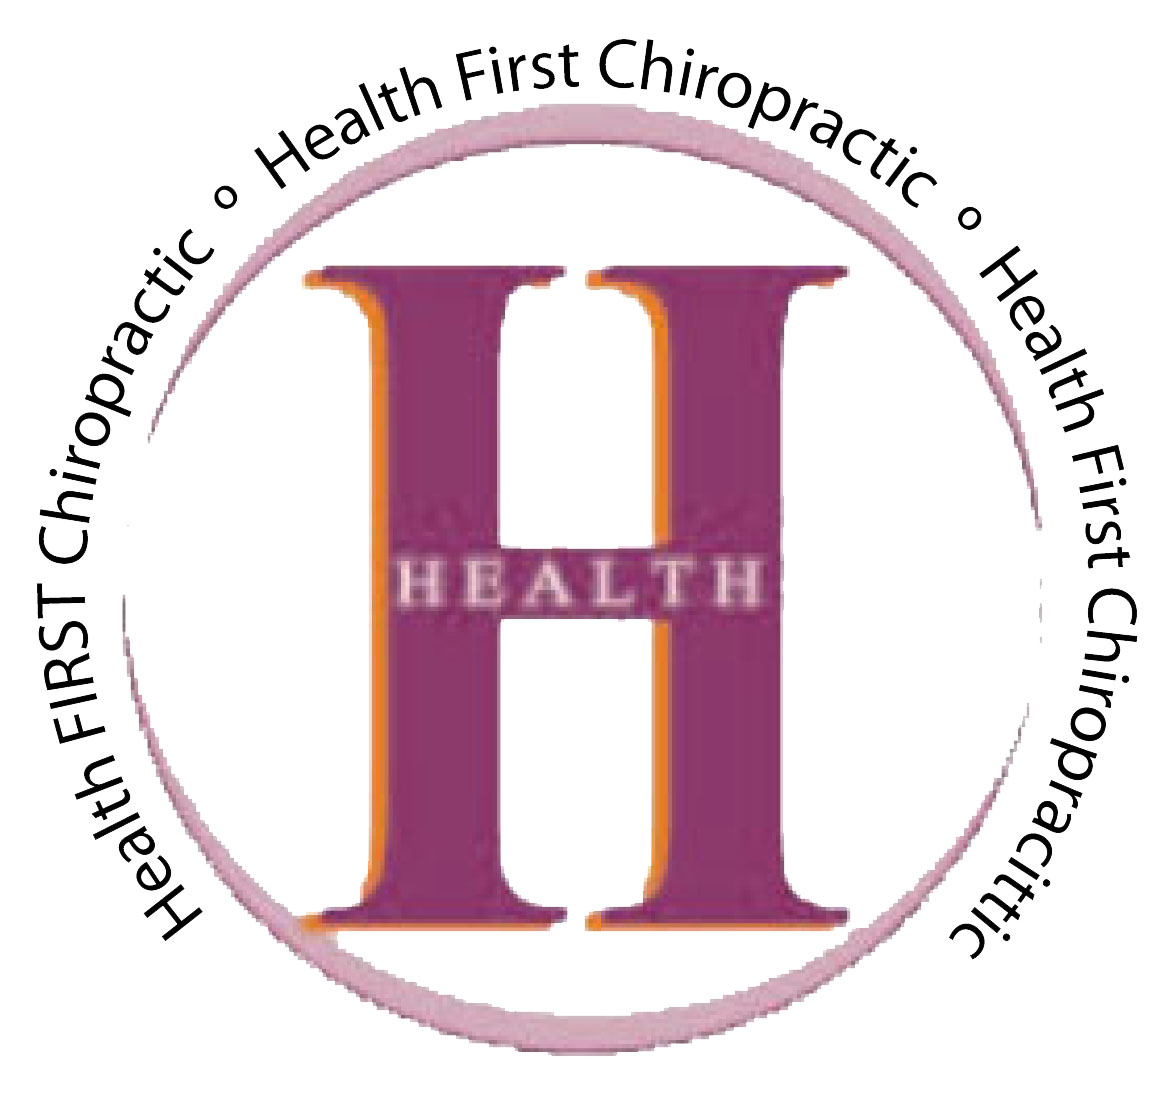 Health First Chiropractic